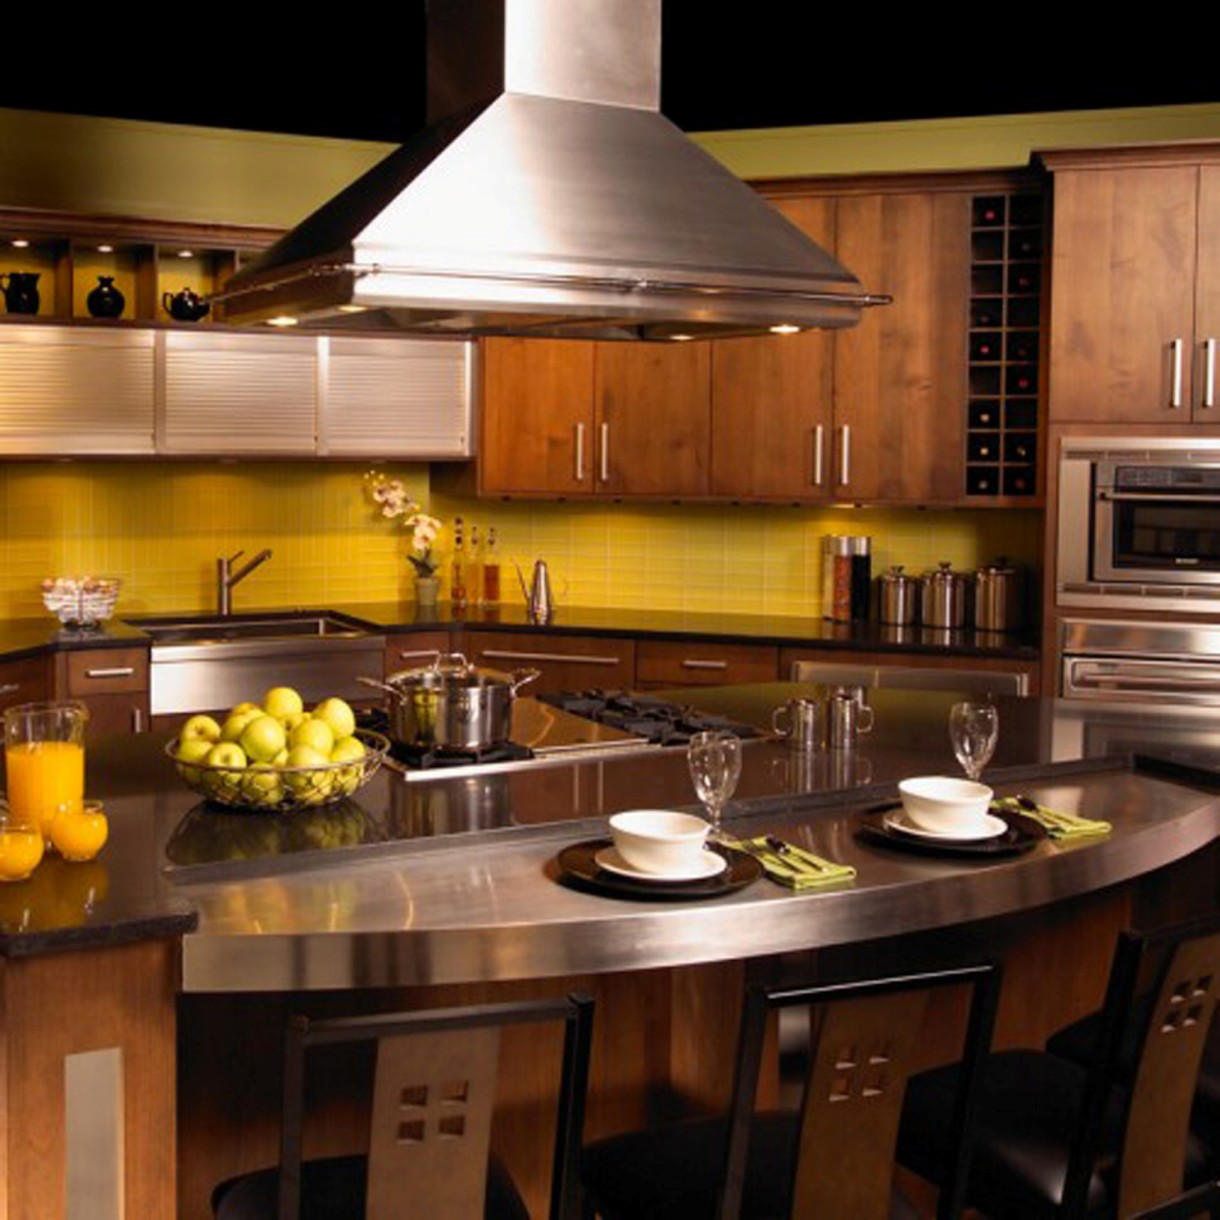 Modern Restaurant Kitchen Design 21 Marvelous Italian Kitchen Decor Ideas